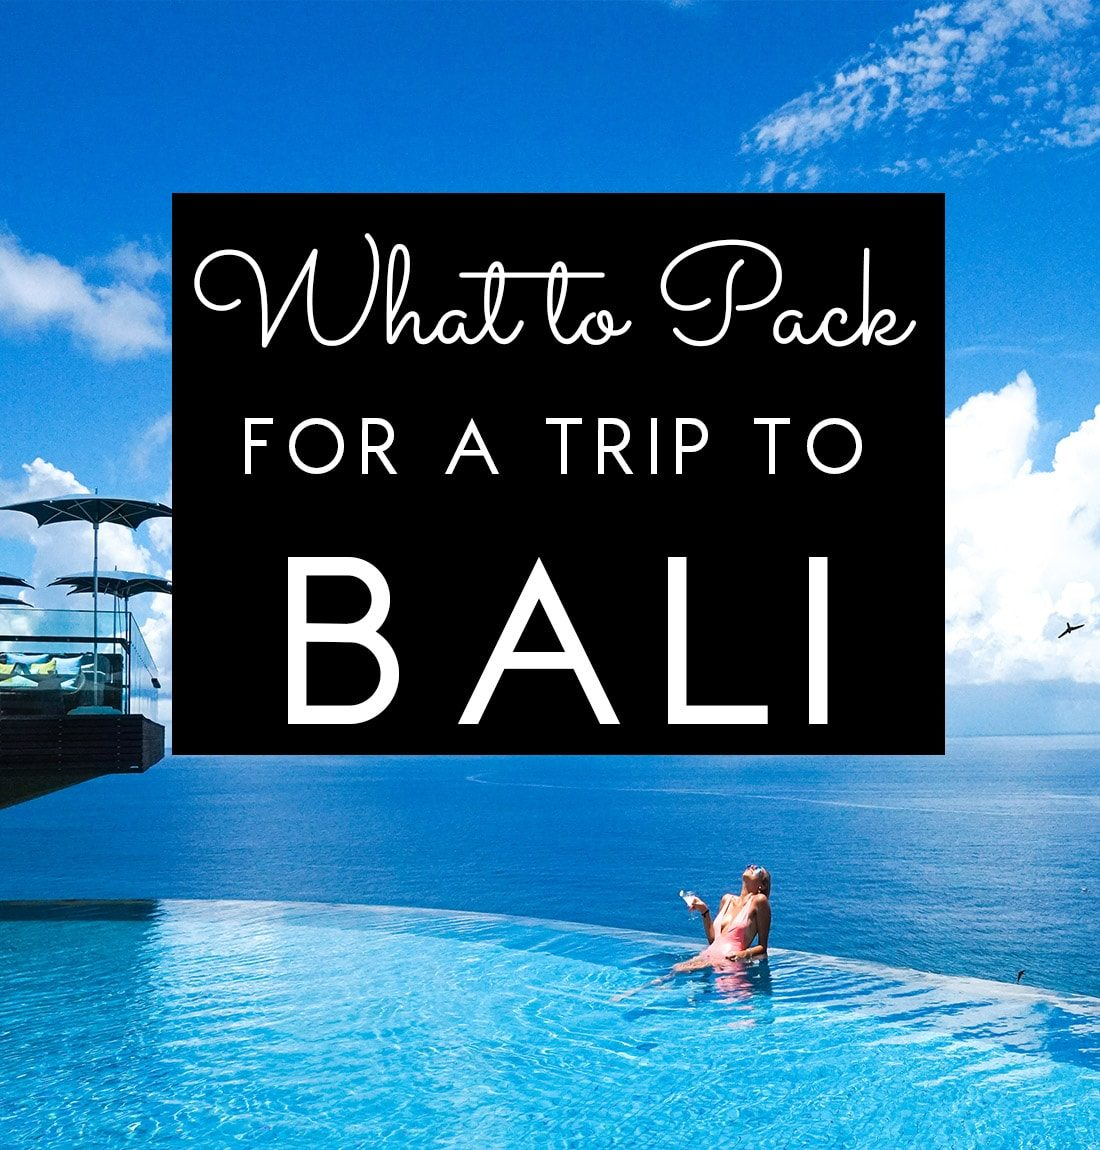 The Ultimate Bali Ng Guide What To Pack For A Trip Jetsetchristina